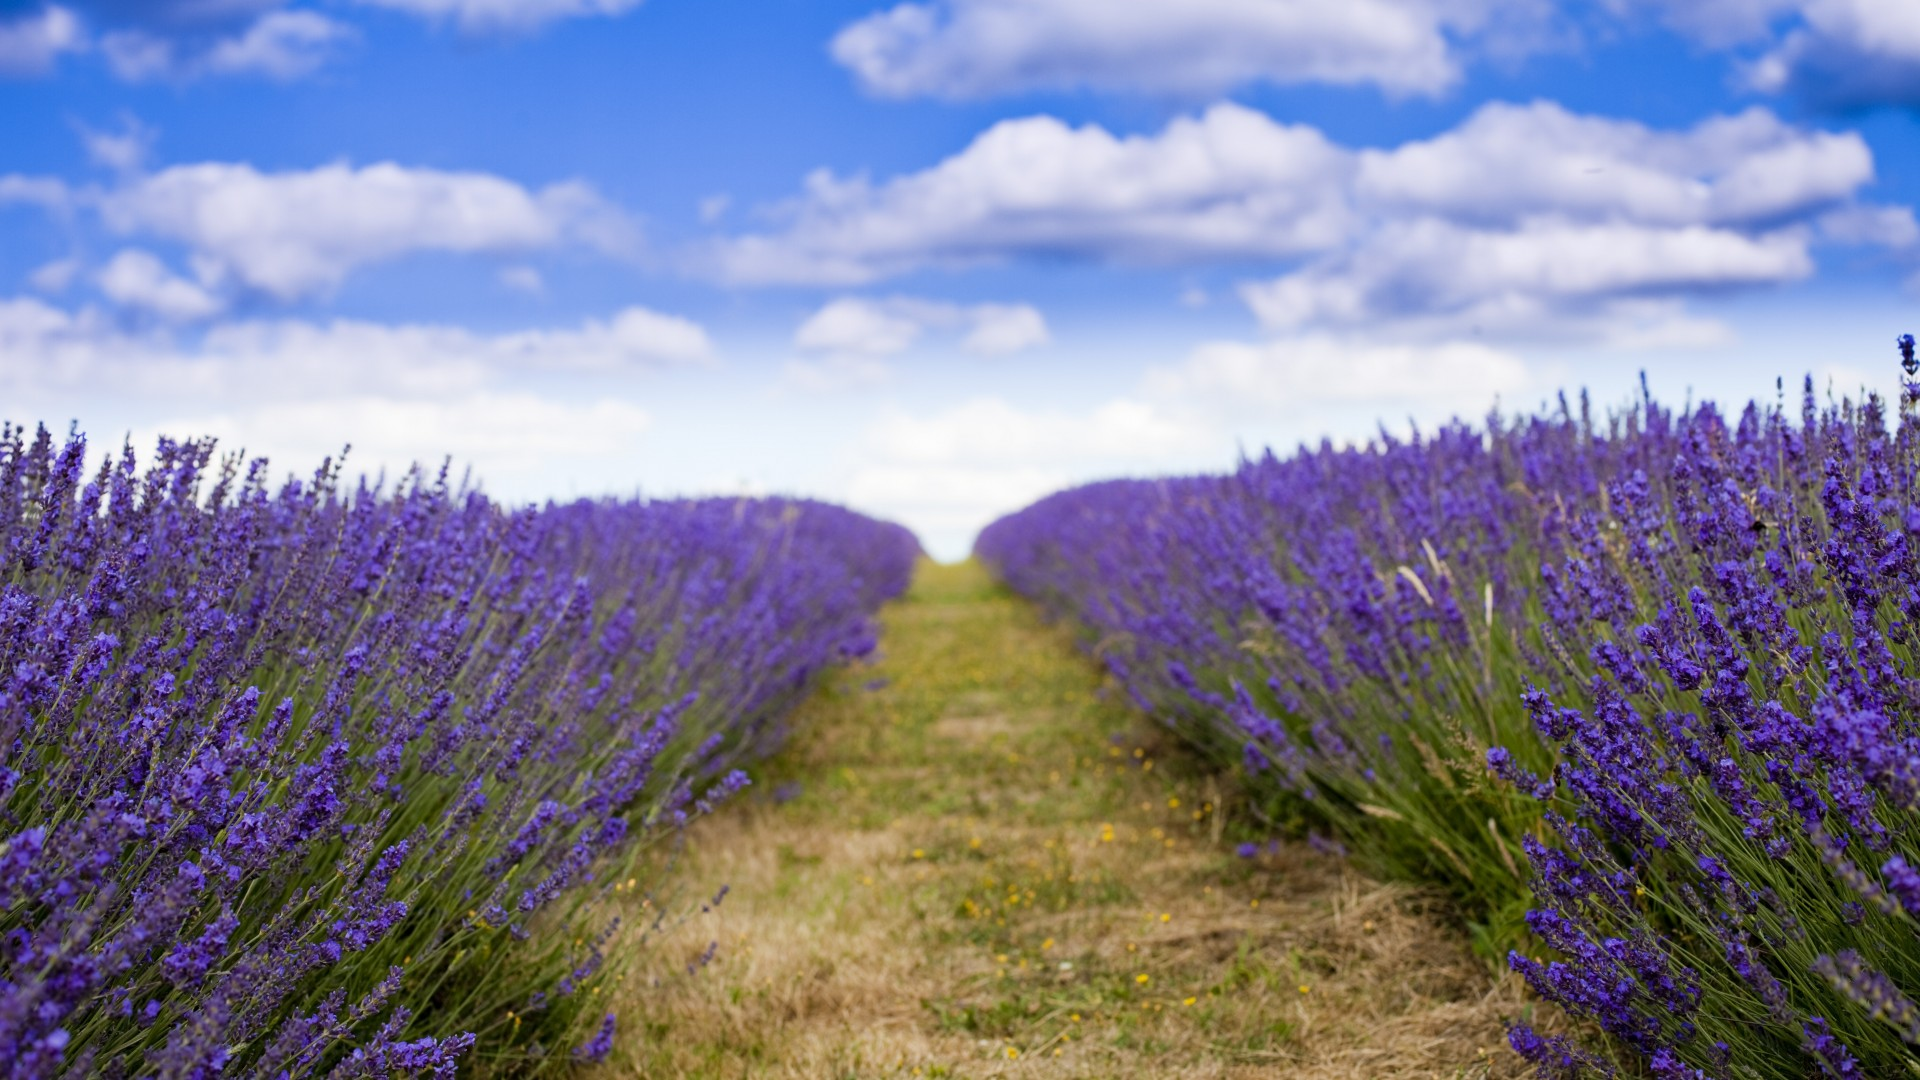 Wallpaper Nature Flowers lavender field flowers sky clouds 1920x1080